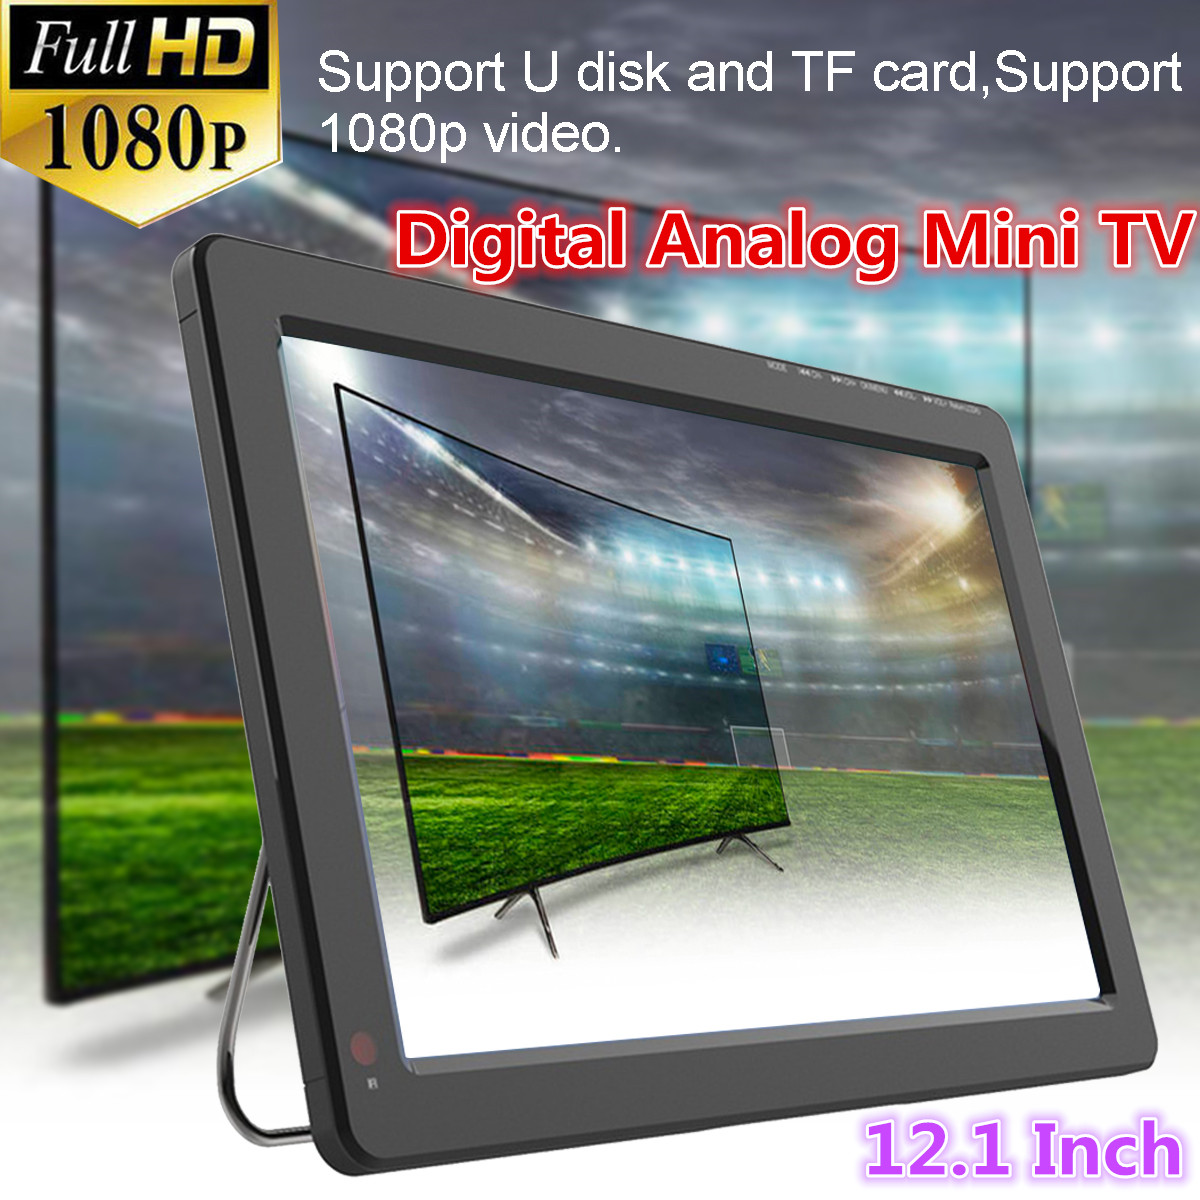 12V 18W 12.1 Inch Portable Digital Analog Mini TV DVB-T / DVB-T2 TFT LED 1080P HD Car TV Support TF Card USB Audio Eu Plug